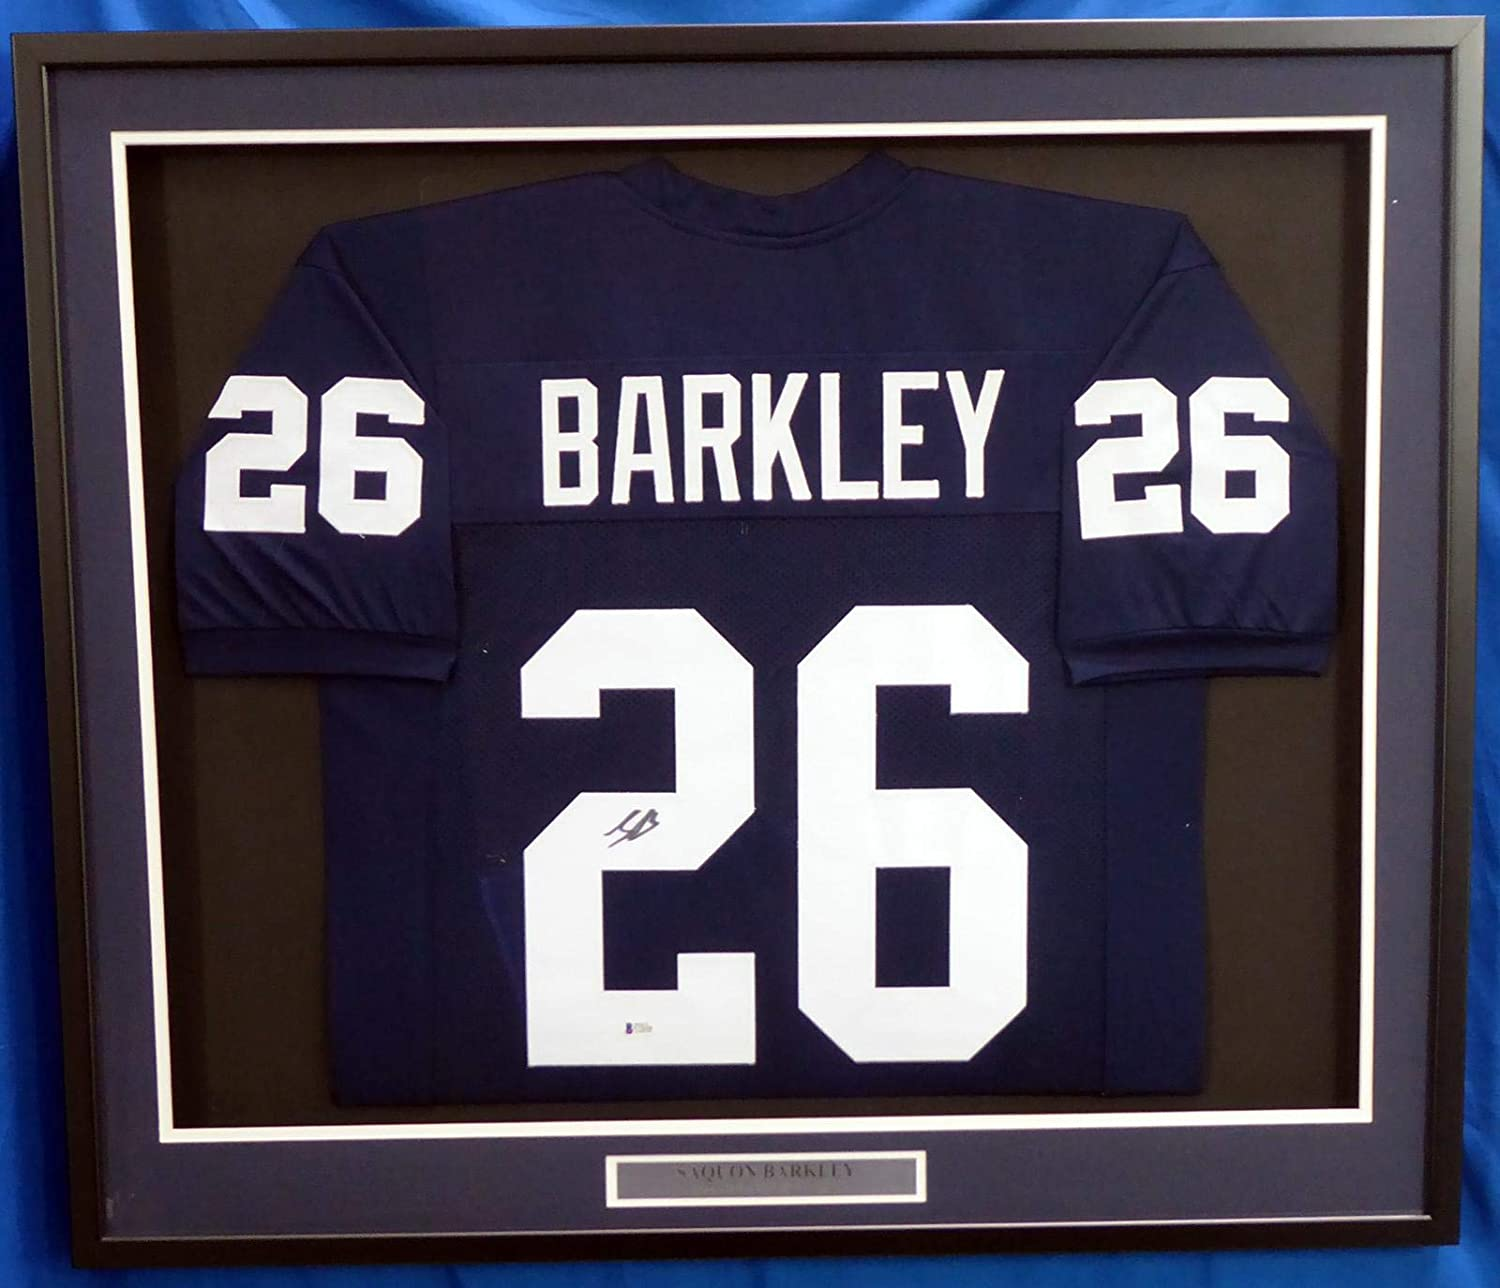 Autographed Saquon Barkley Jersey - Framed Blue Beckett BAS Stock #177407 - Beckett Authentication - Autographed College Jerseys